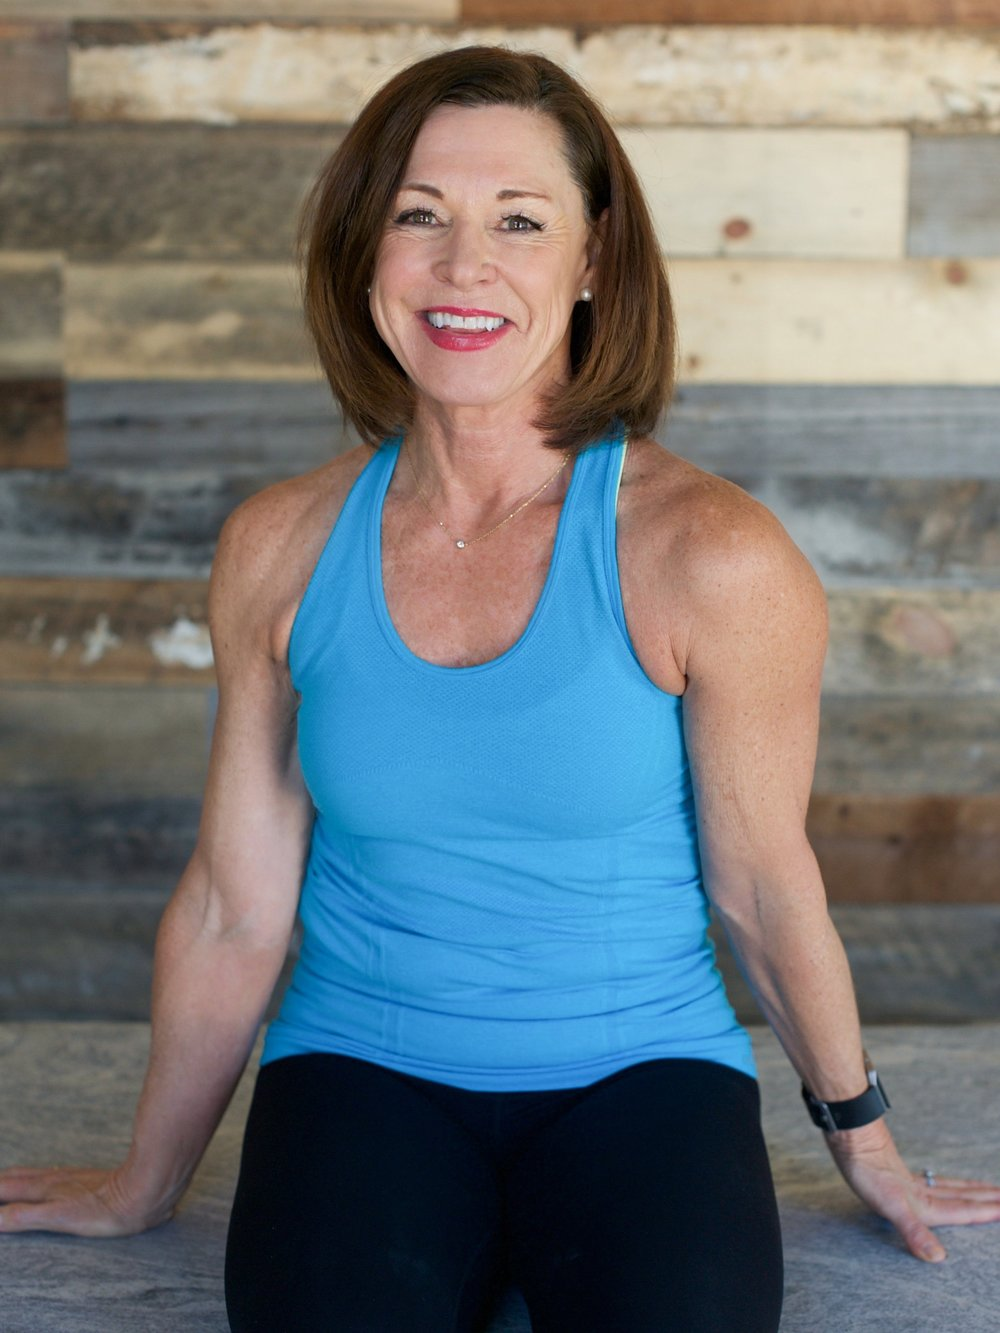 Mary Reischl, CPT   A licensed physical therapist and certified pilates instructor, Mary is passionate about giving her clients personalized attention and customized programs.  She dedicates time to performing in depth wellness screenings and evaluations for injury prevention.